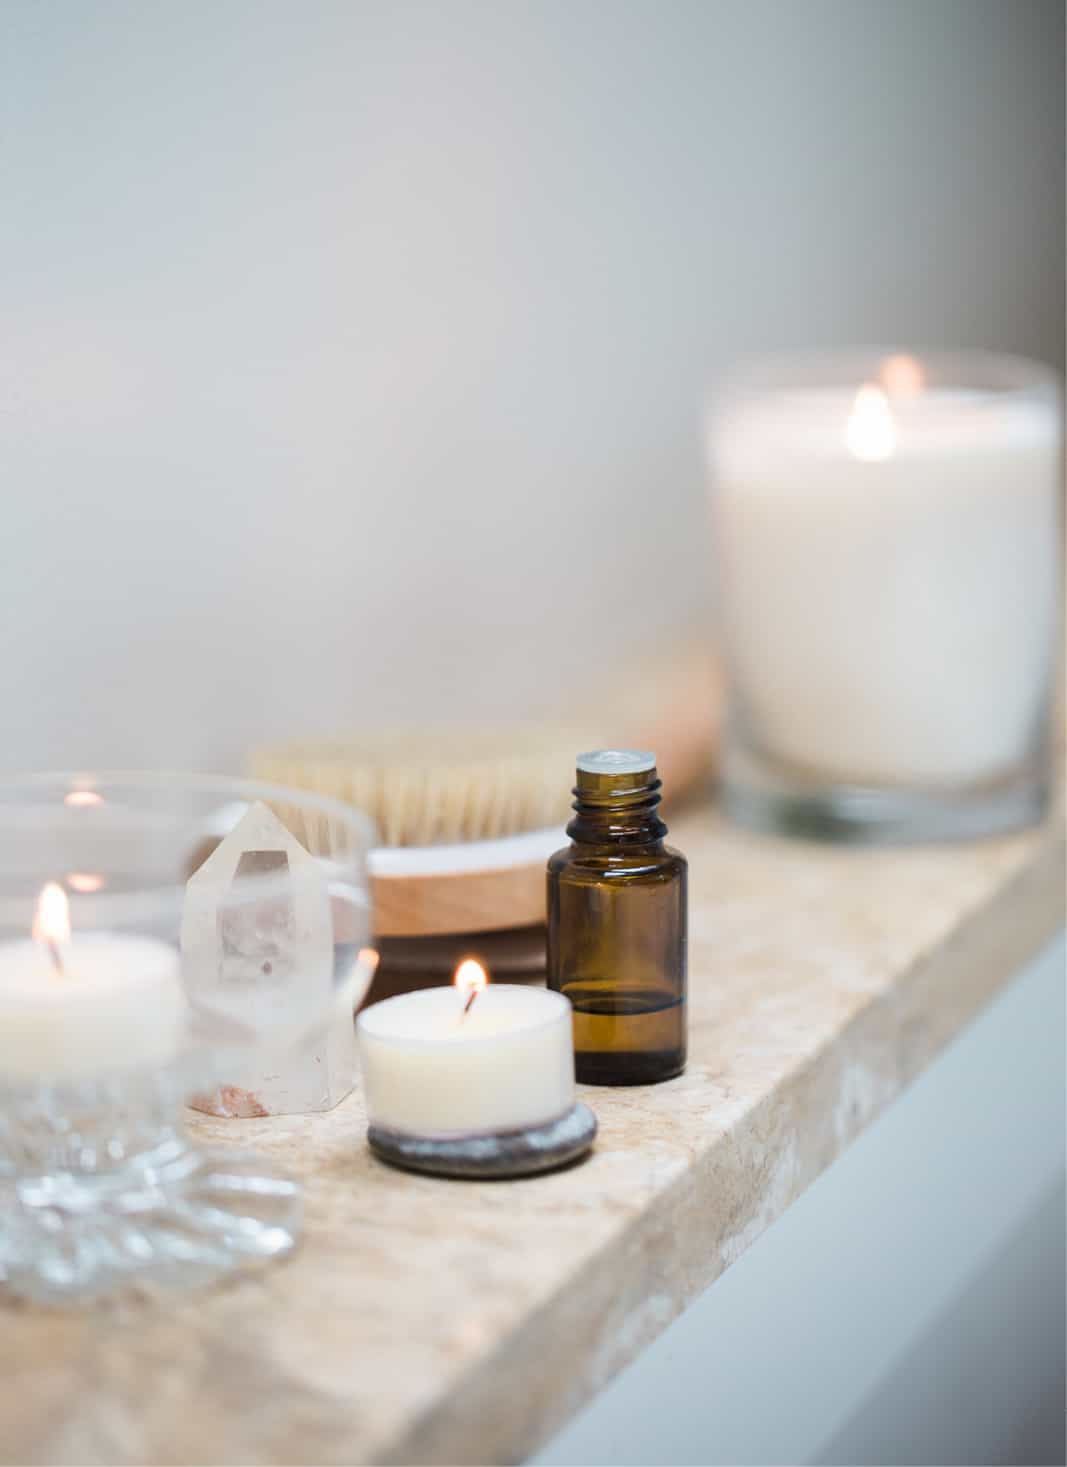 How to use essential oils to support your immune system, detoxify, and boost immunity.